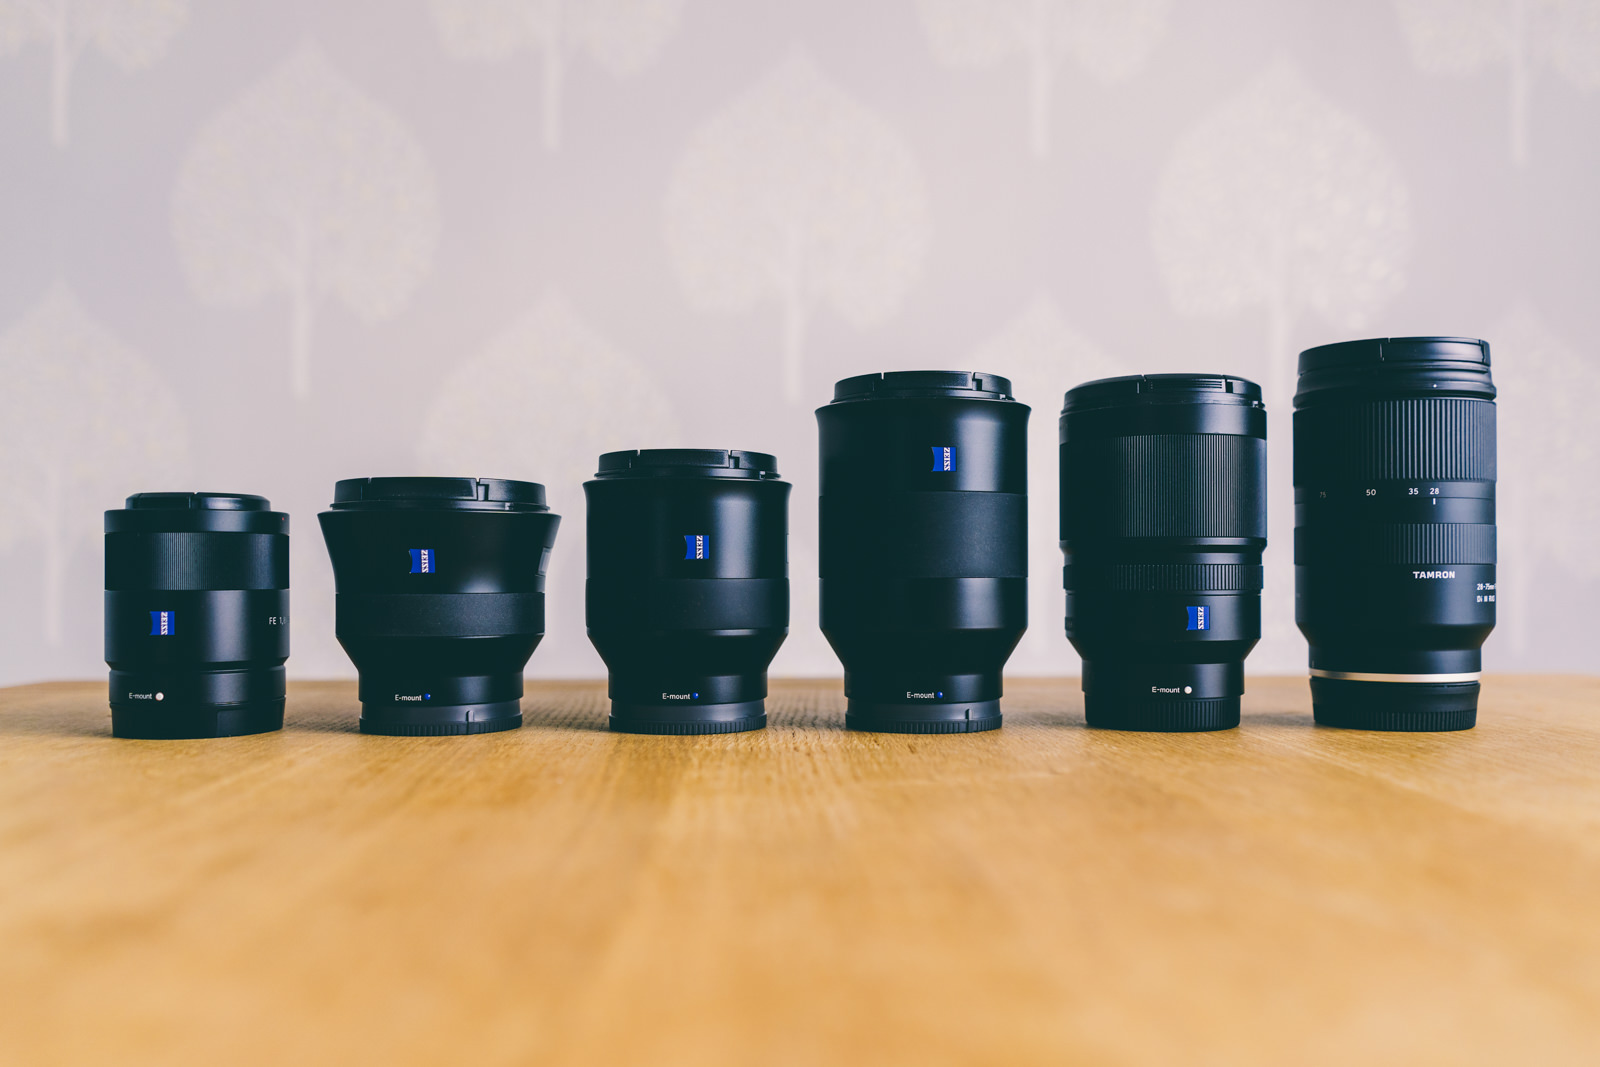 Sony Full Frame Lenses For Weddings